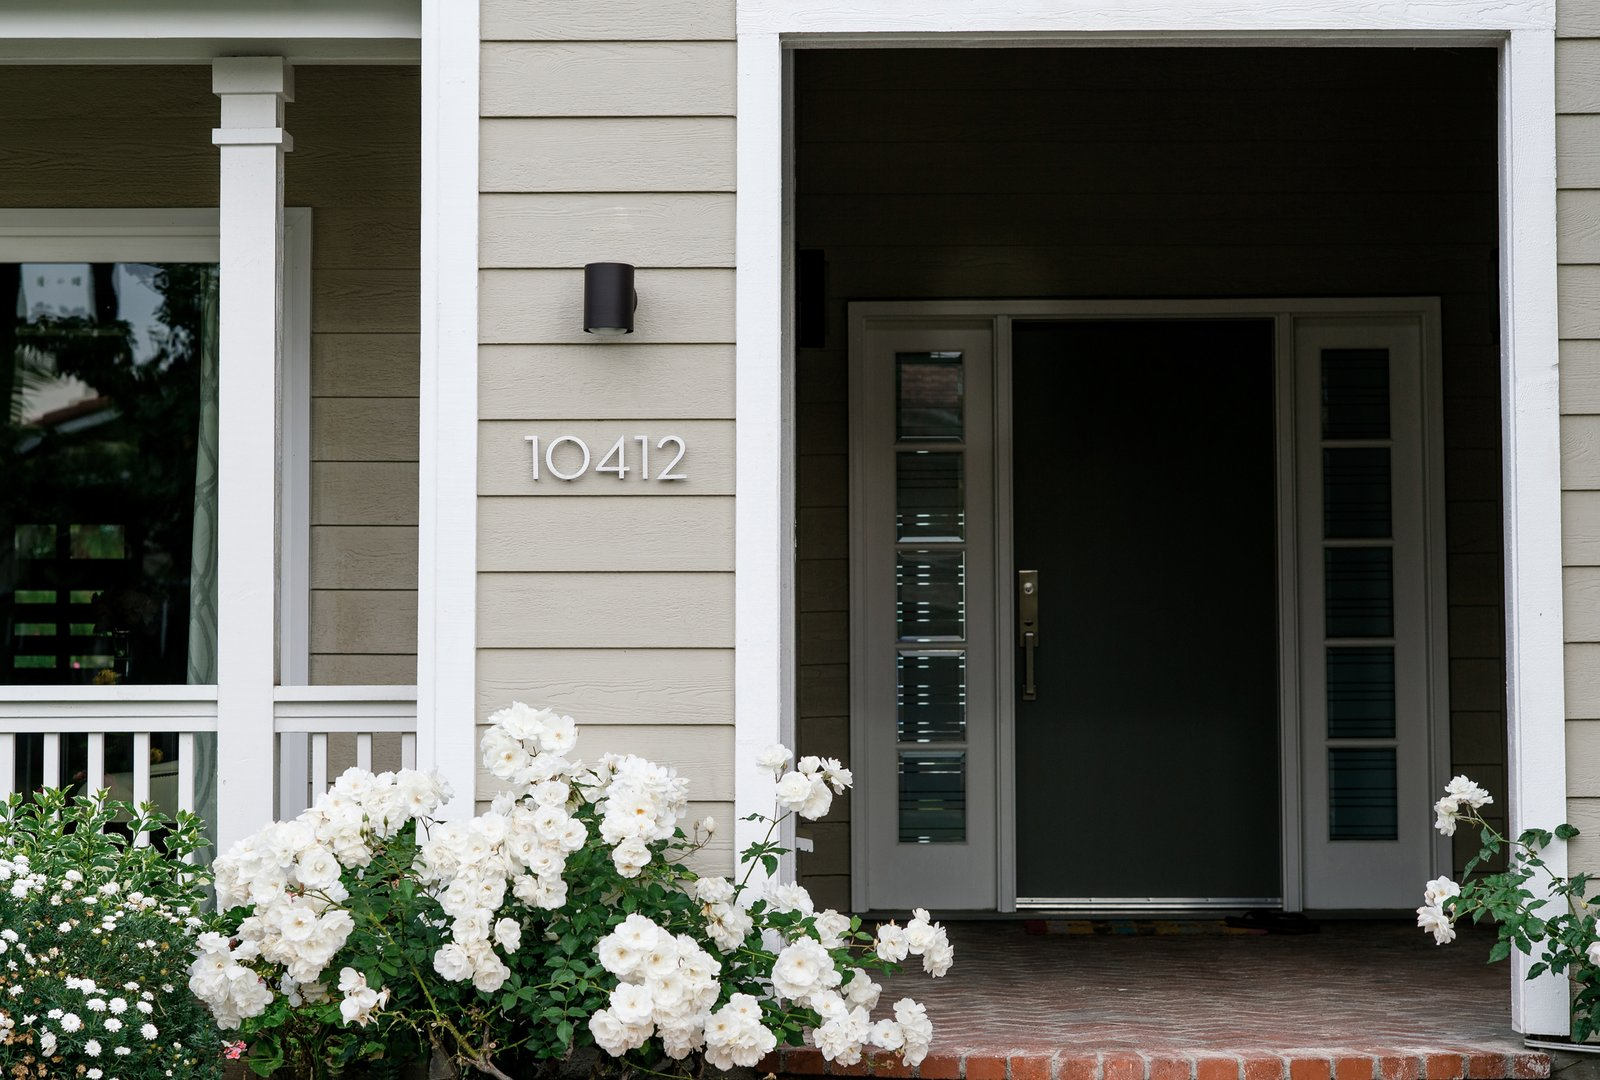 Outdoor, Front Yard, Hardscapes, Flowers, Walkways, Shrubs, and Large Patio, Porch, Deck Contemporary lighting and signage details at the traditional front entry hint at the modern interior.  Villa Park Modern by MYD studio, inc.